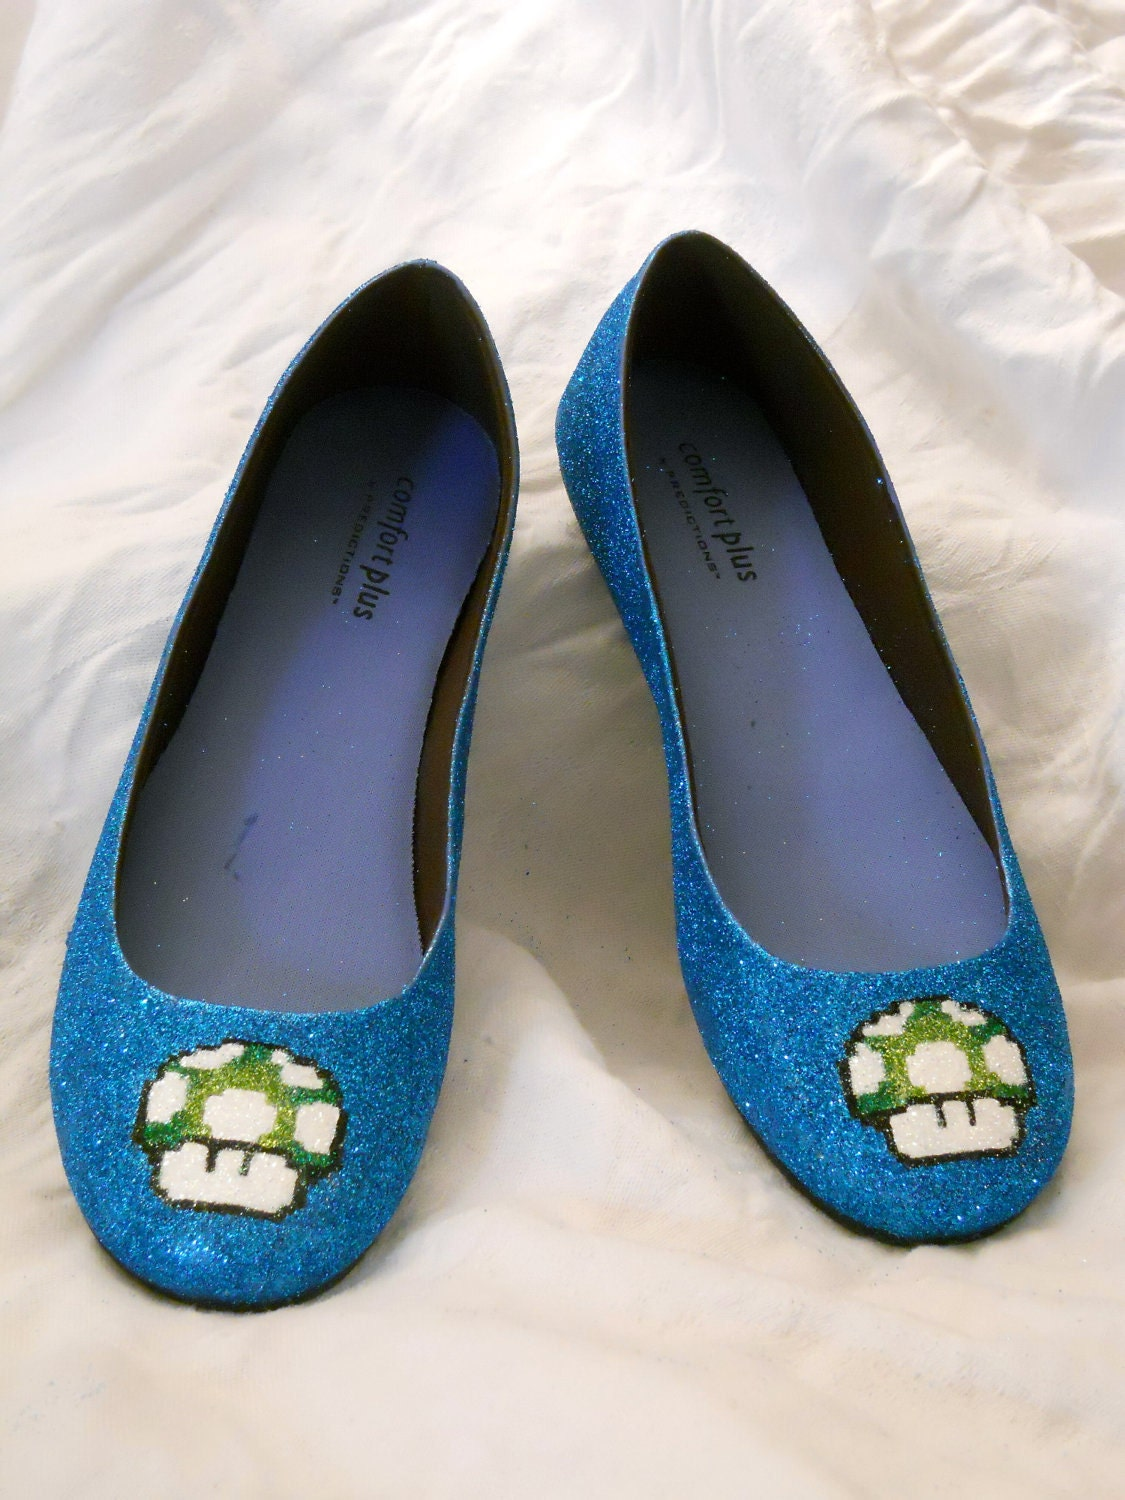 1 Up Mario Mushroom Glitter Shoes